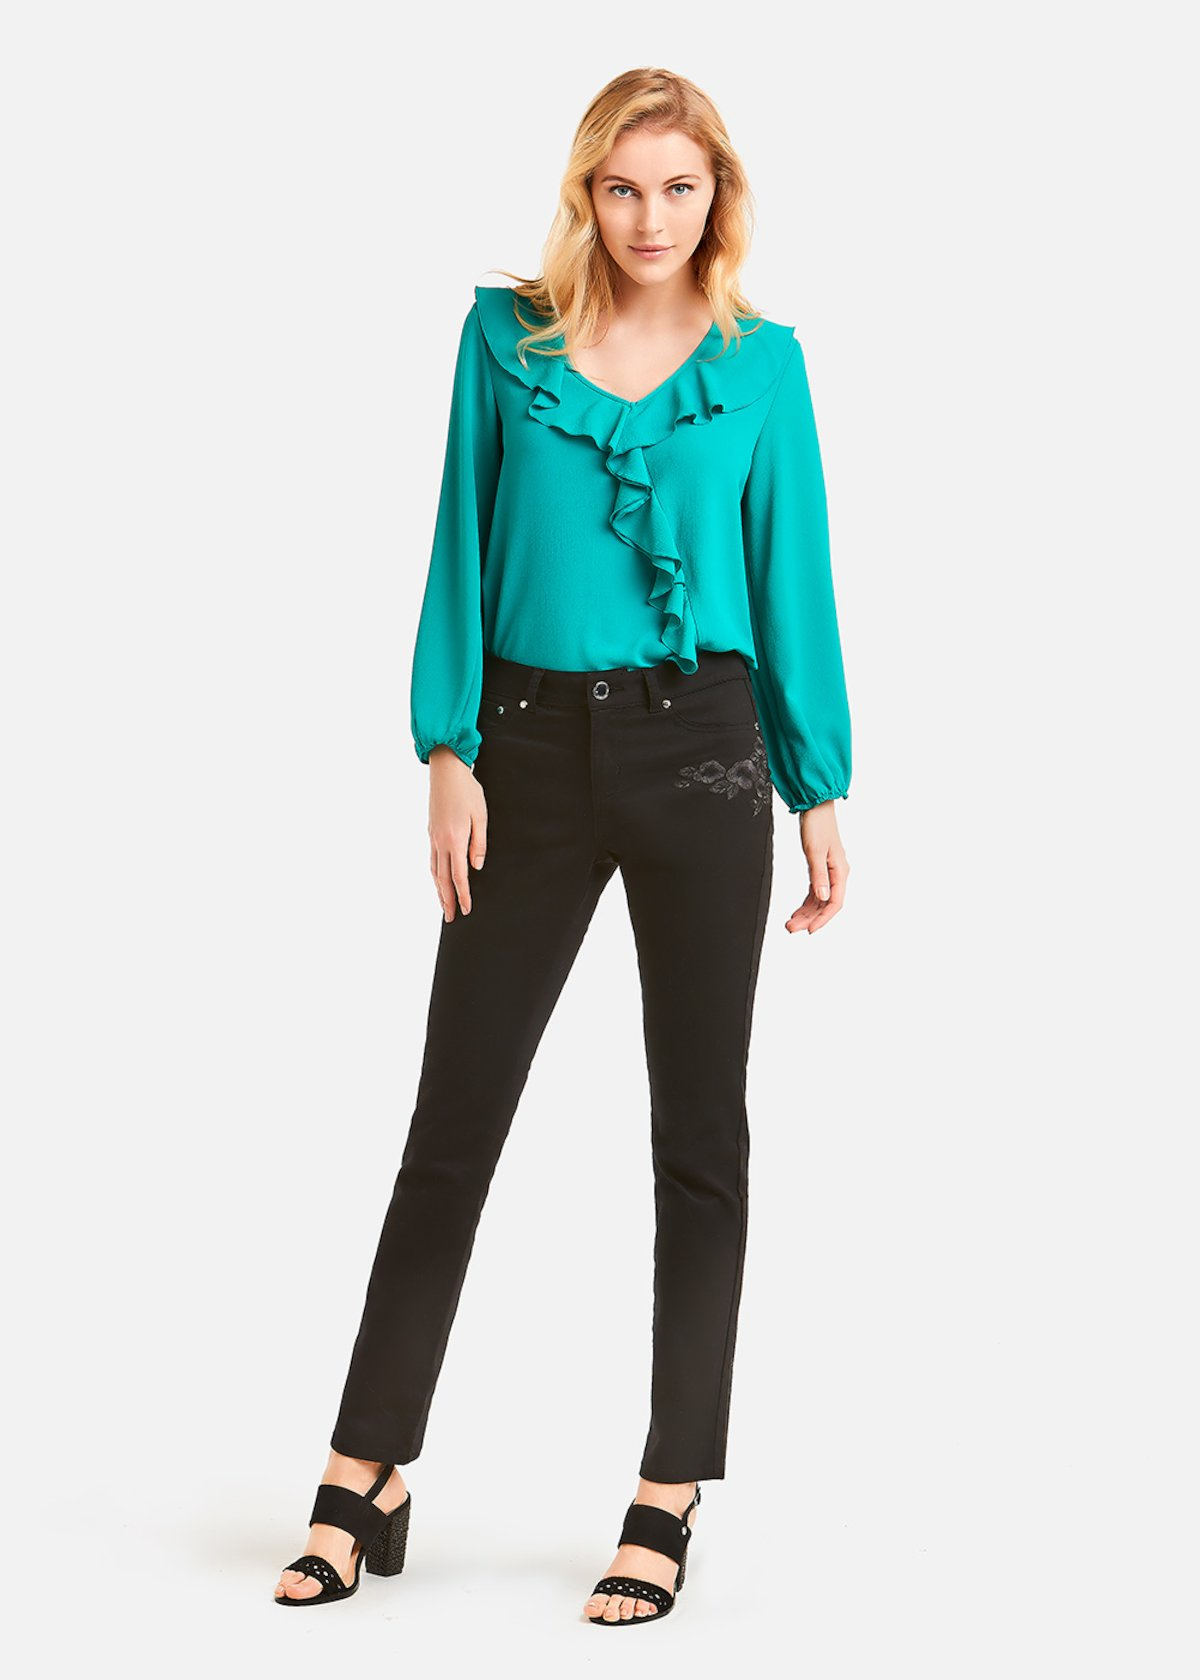 Cristine blouse with long sleeve